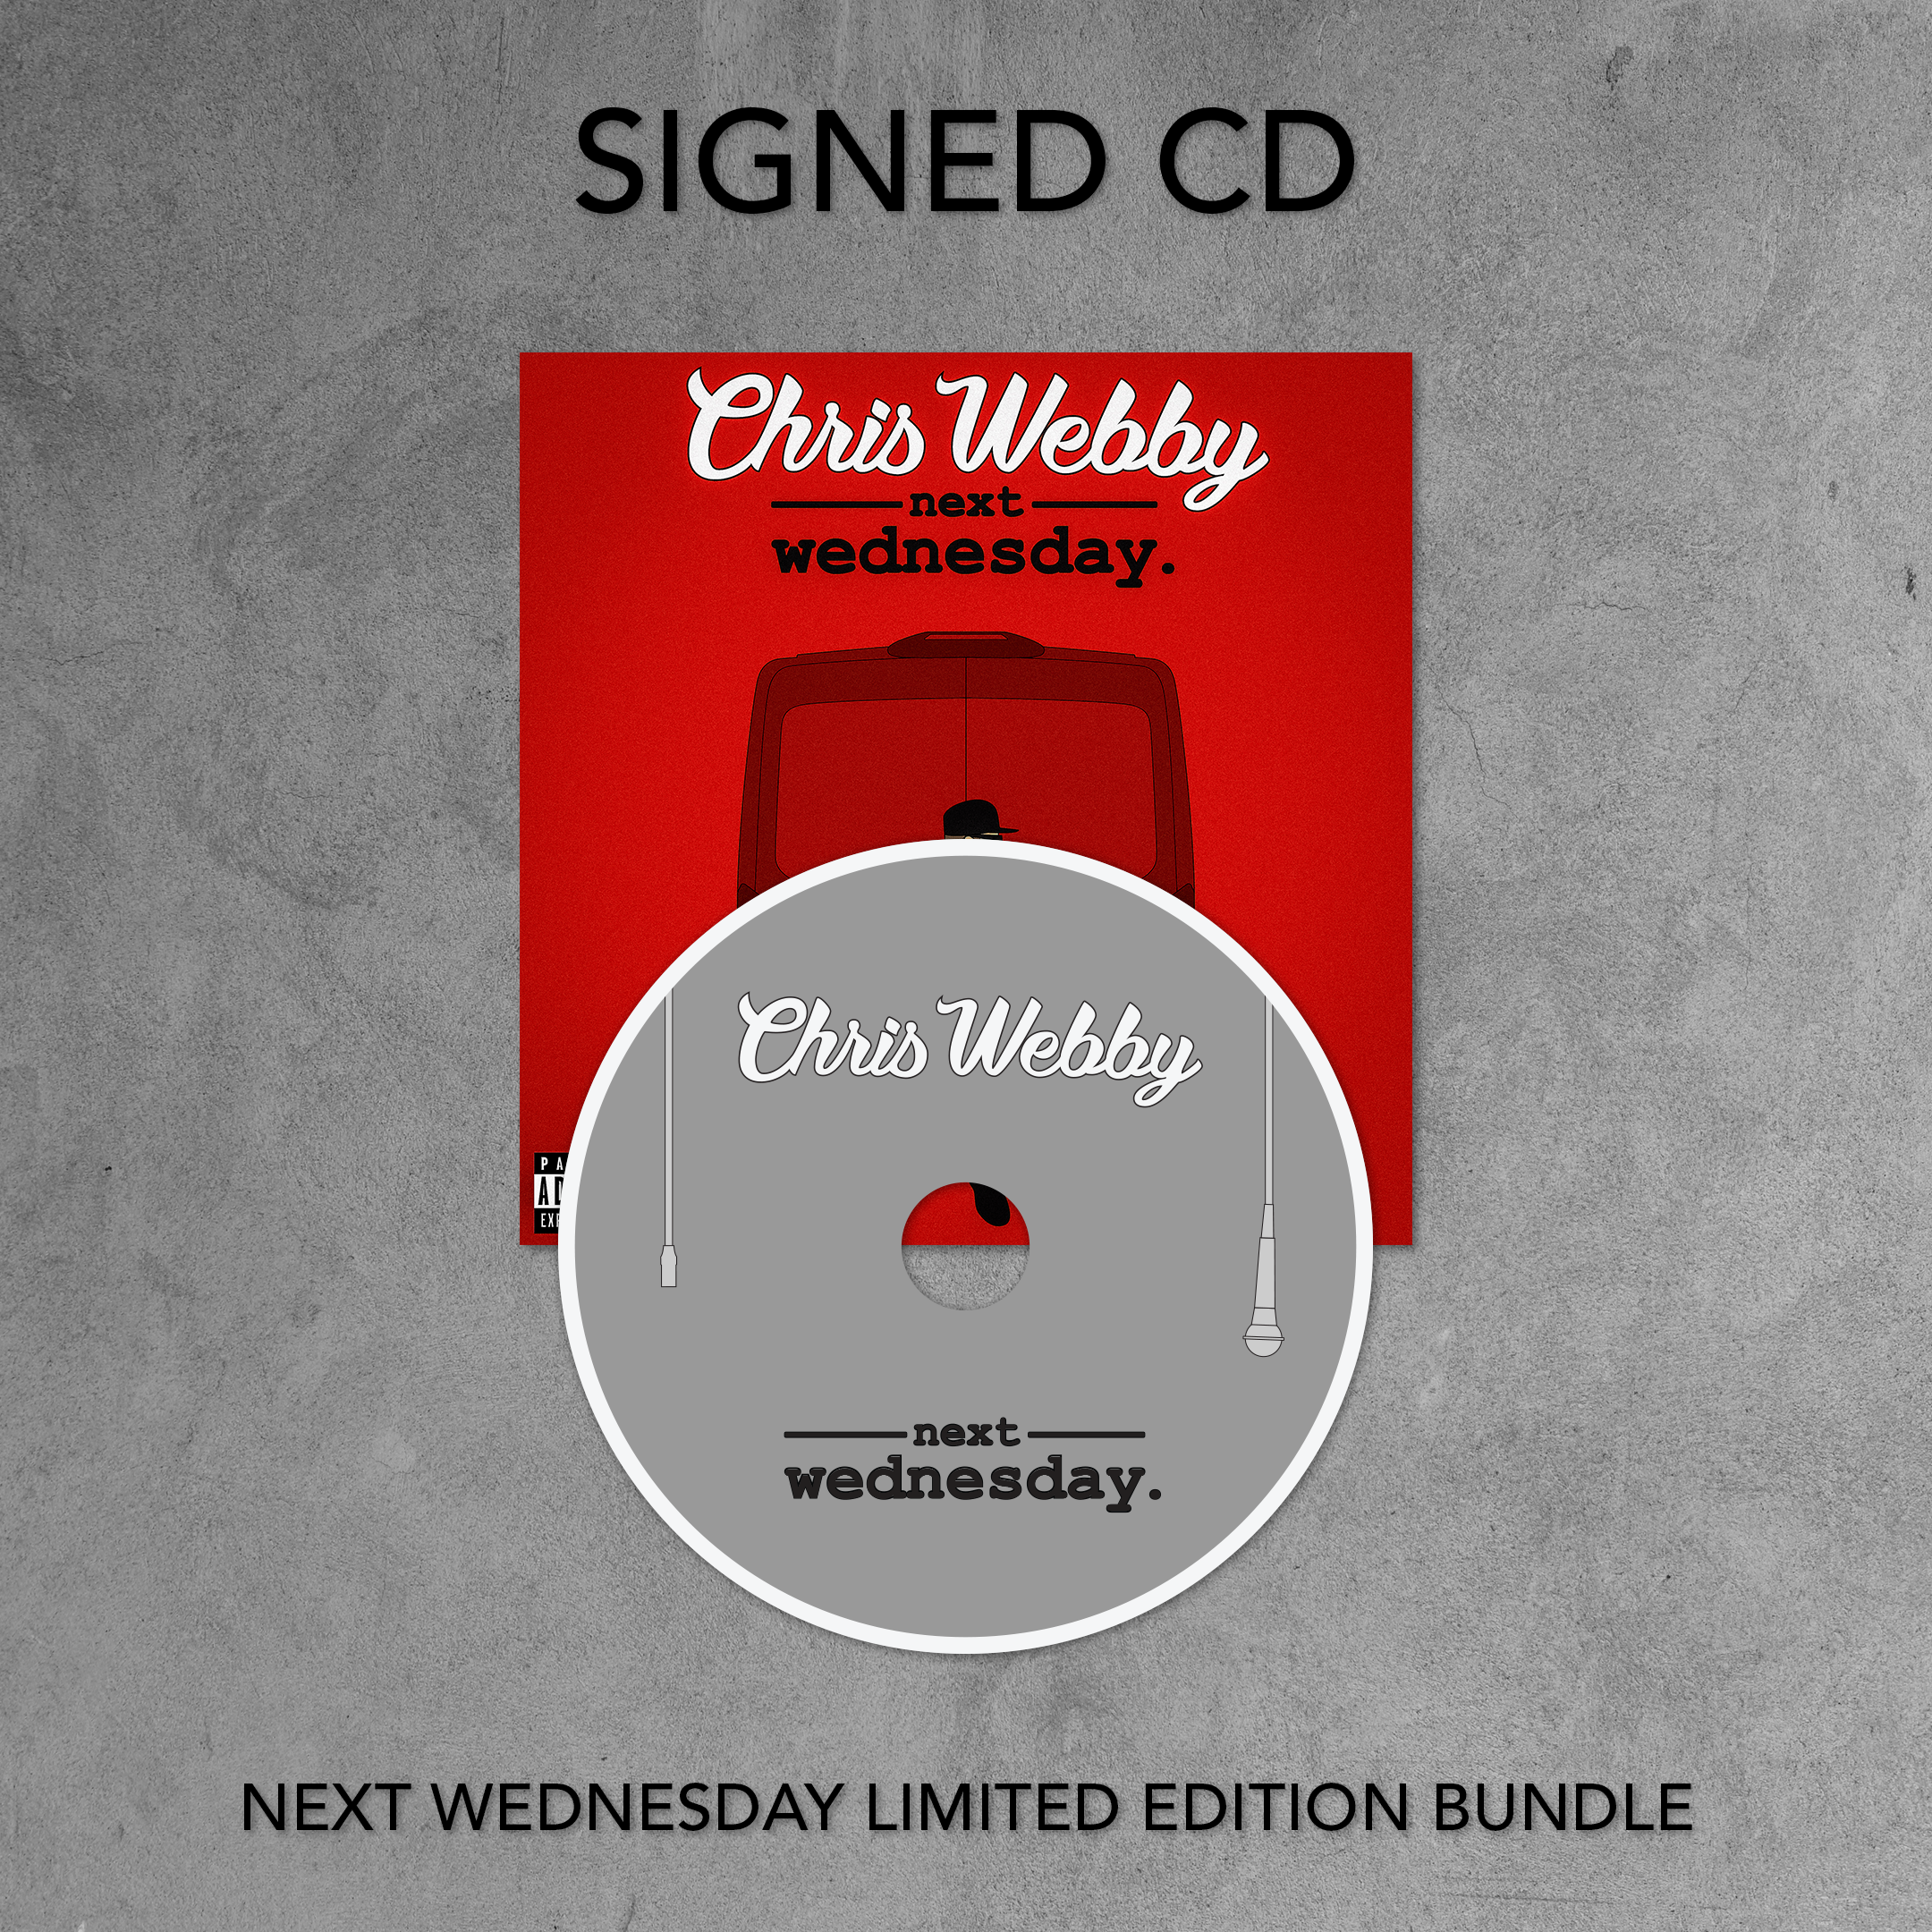 Next Wednesday Signed CD